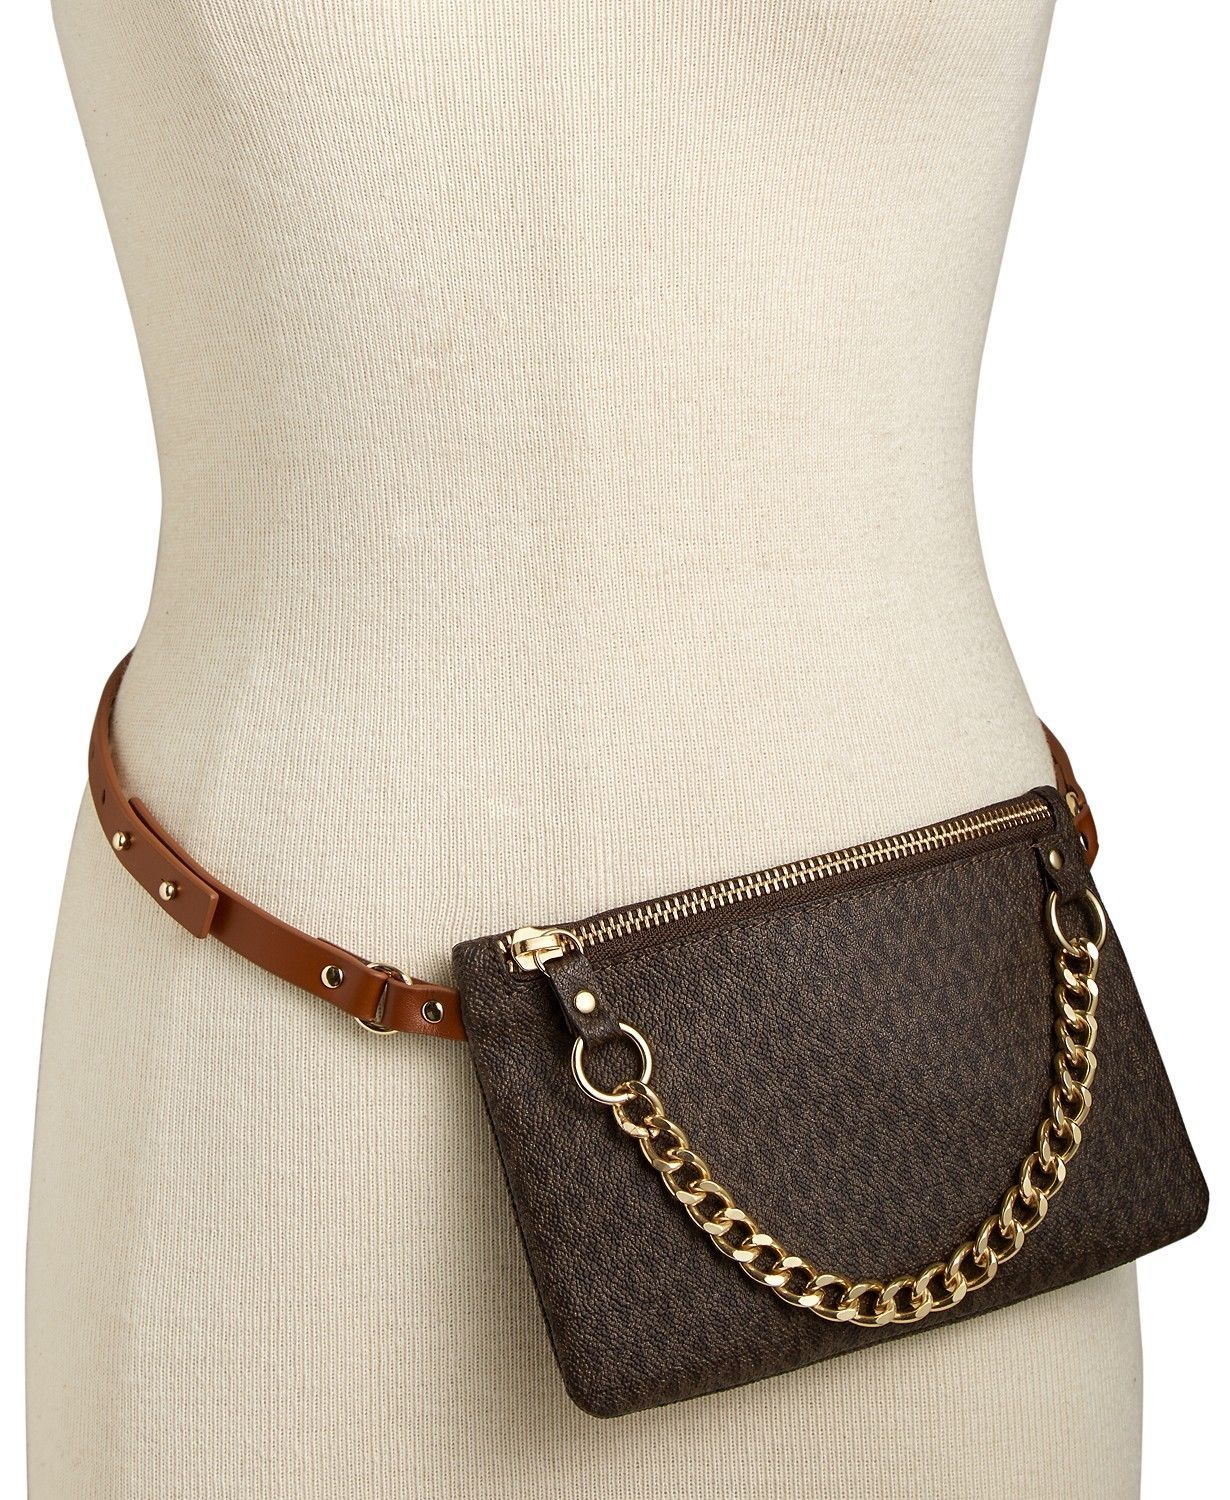 c5b1d4651e31ef Michael Kors Signature Logo Fanny Pack Chain Belt Bag Wallet ~NWT Black~